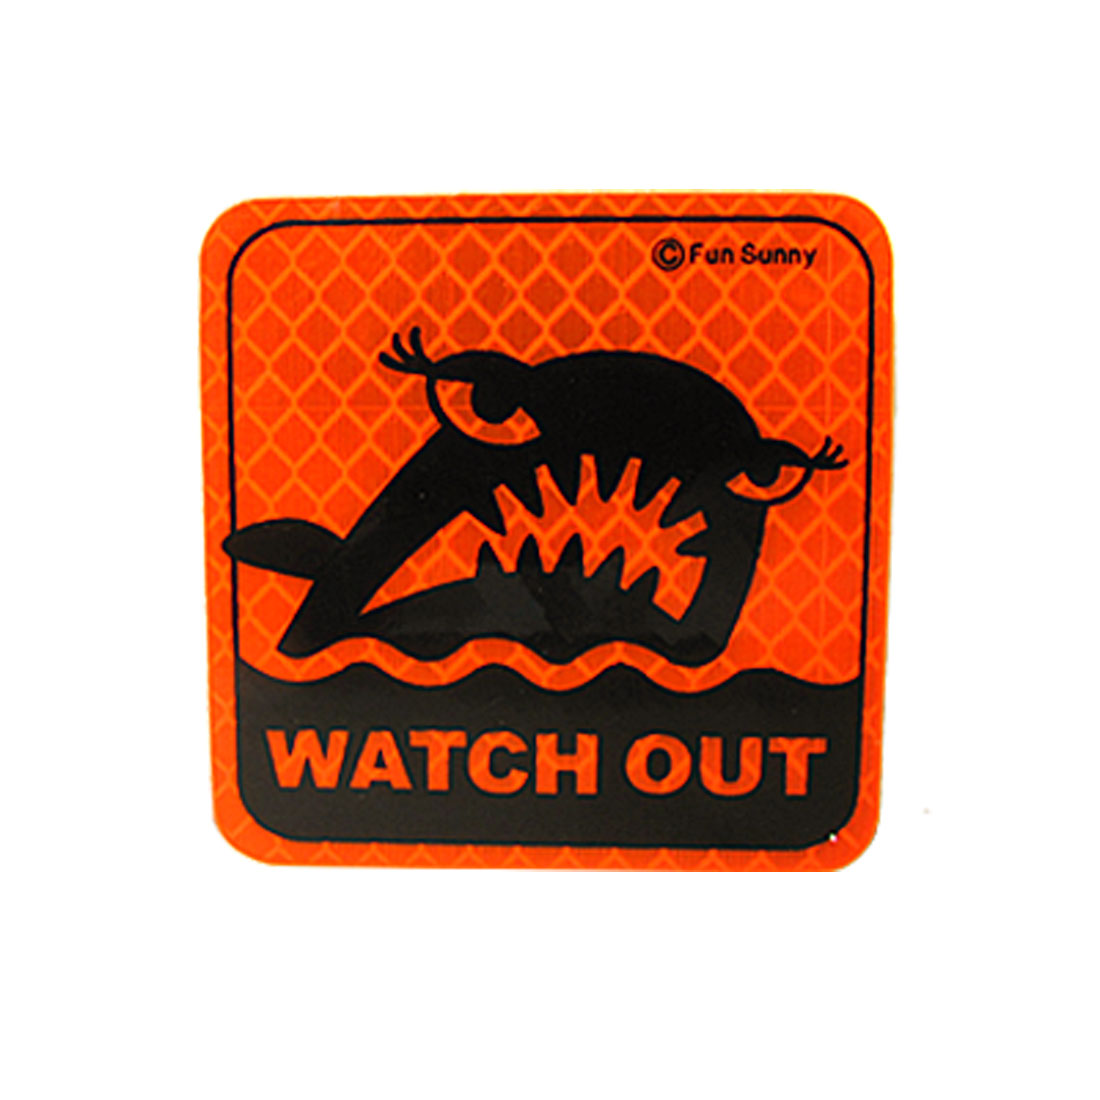 Watch Out Shark Print Reflective Plastic Square Sticker Orange Red for Car